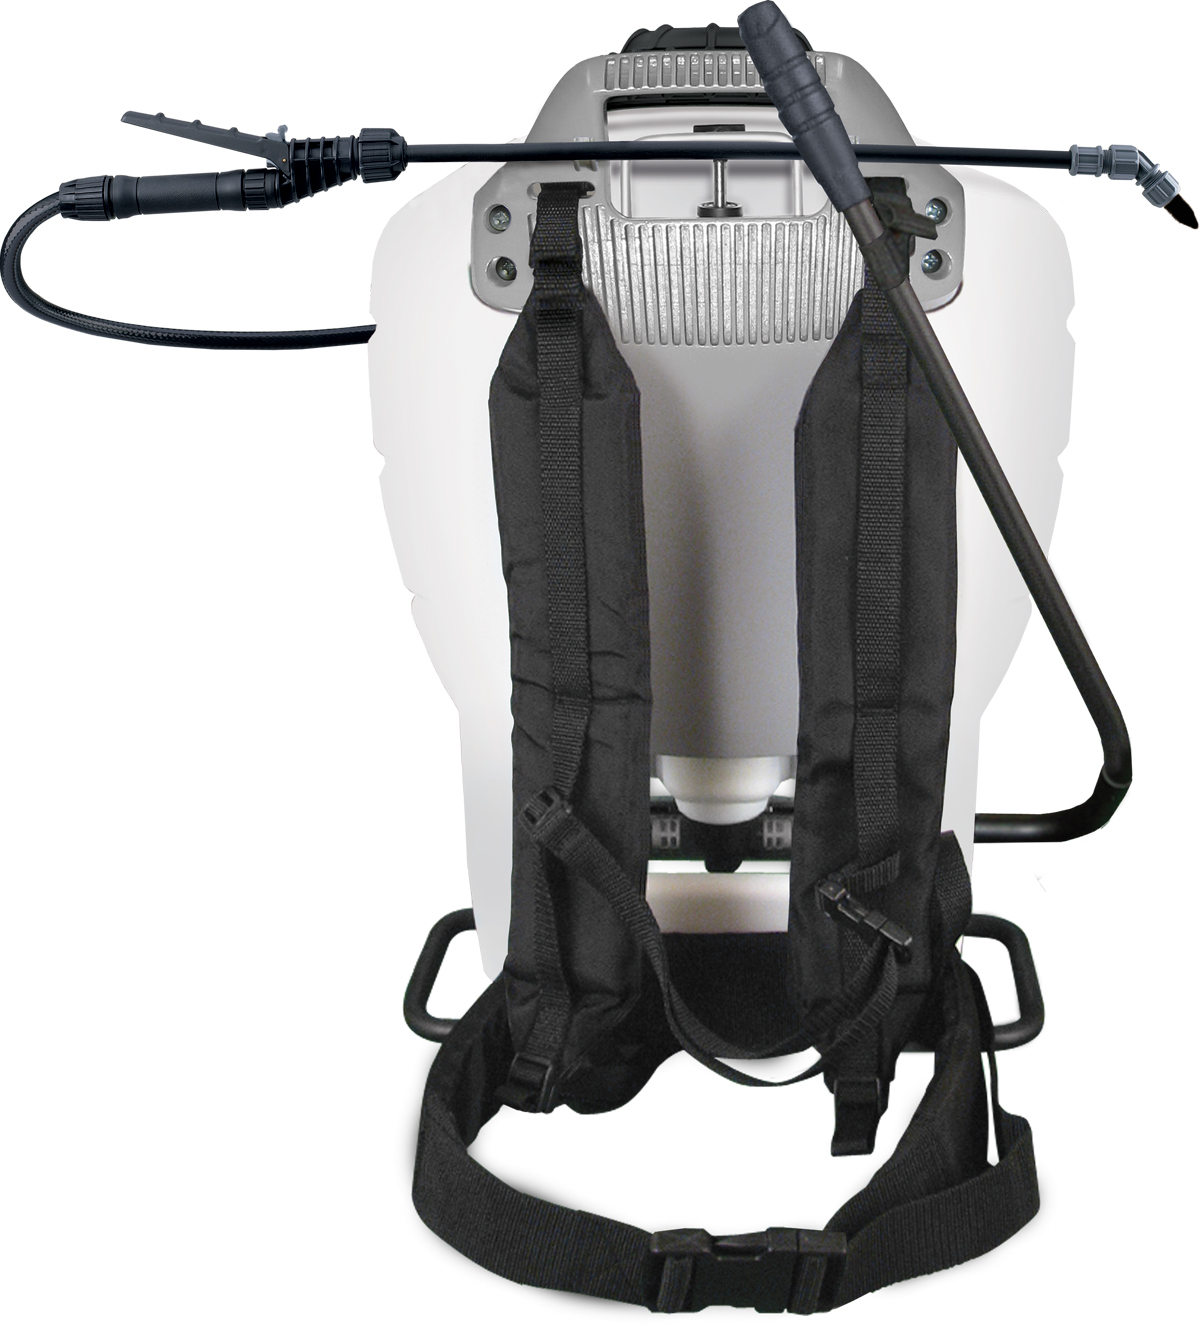 Roundup® No Leak Pump Backpack Sprayer (4 Gallon)